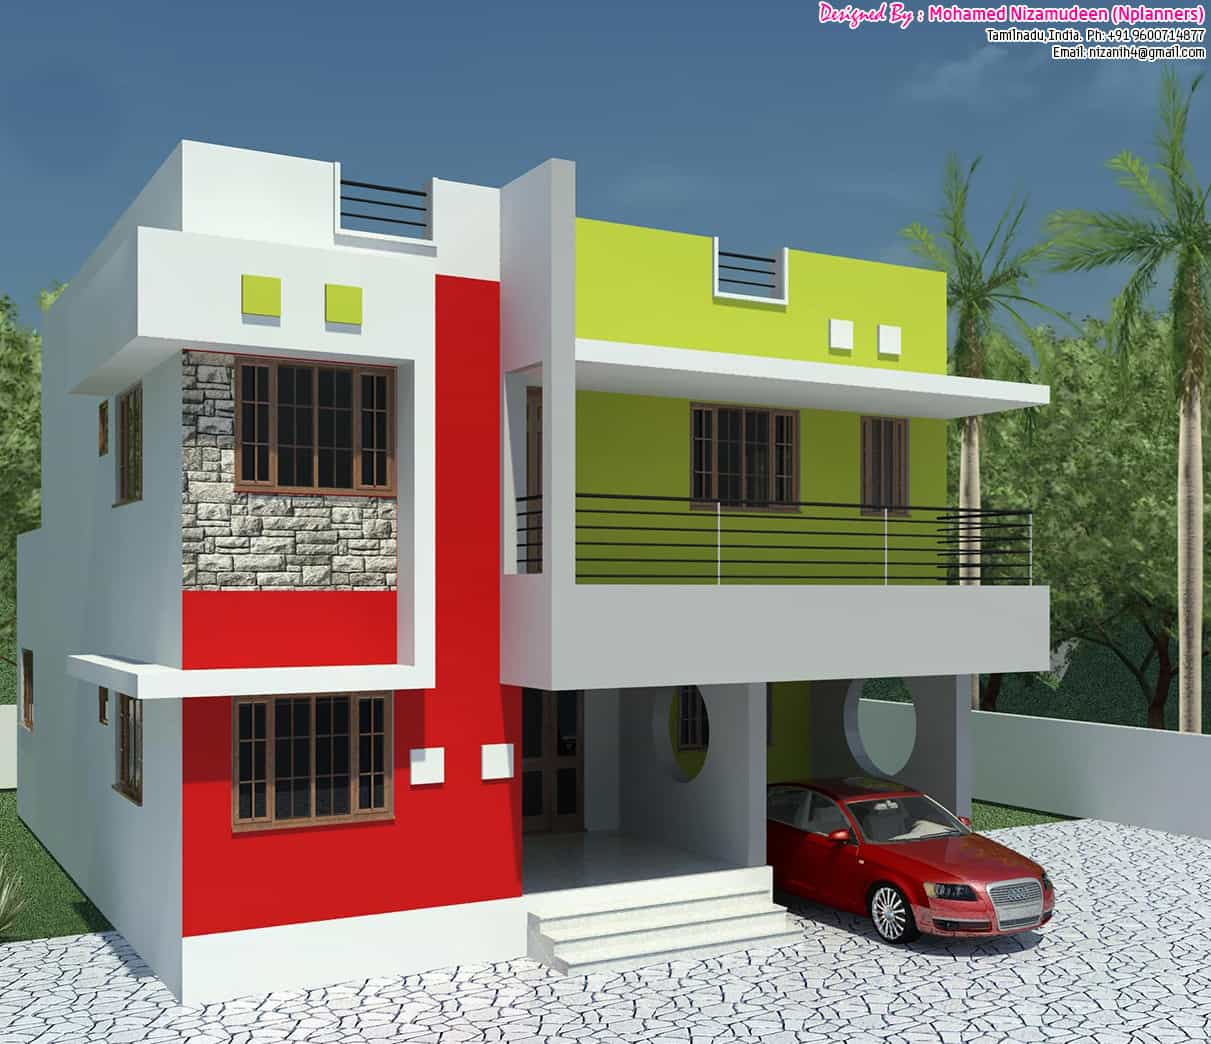 Affordable Basic 3BHK home design at 1300 sq.ft.